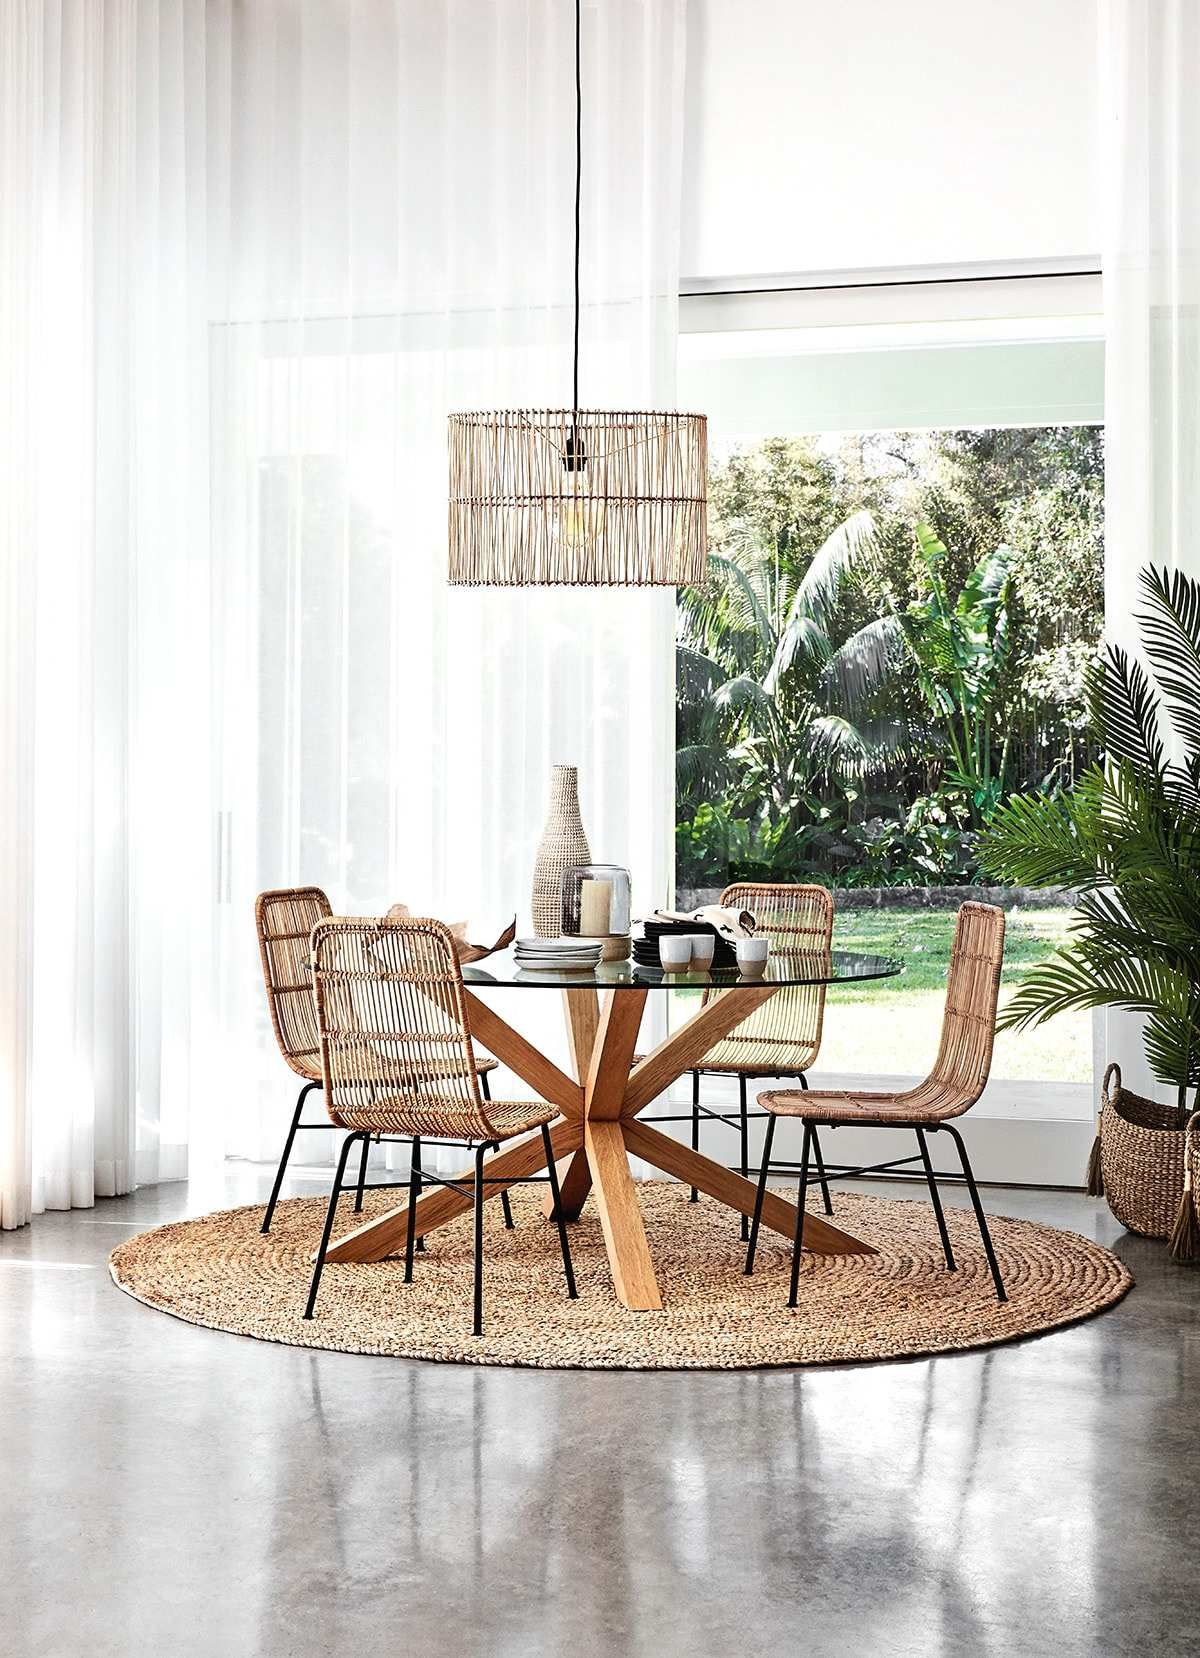 dining room, seamless grey floor, white curtain, glass round table with wooden legs, rattan chairs, rattan pendants